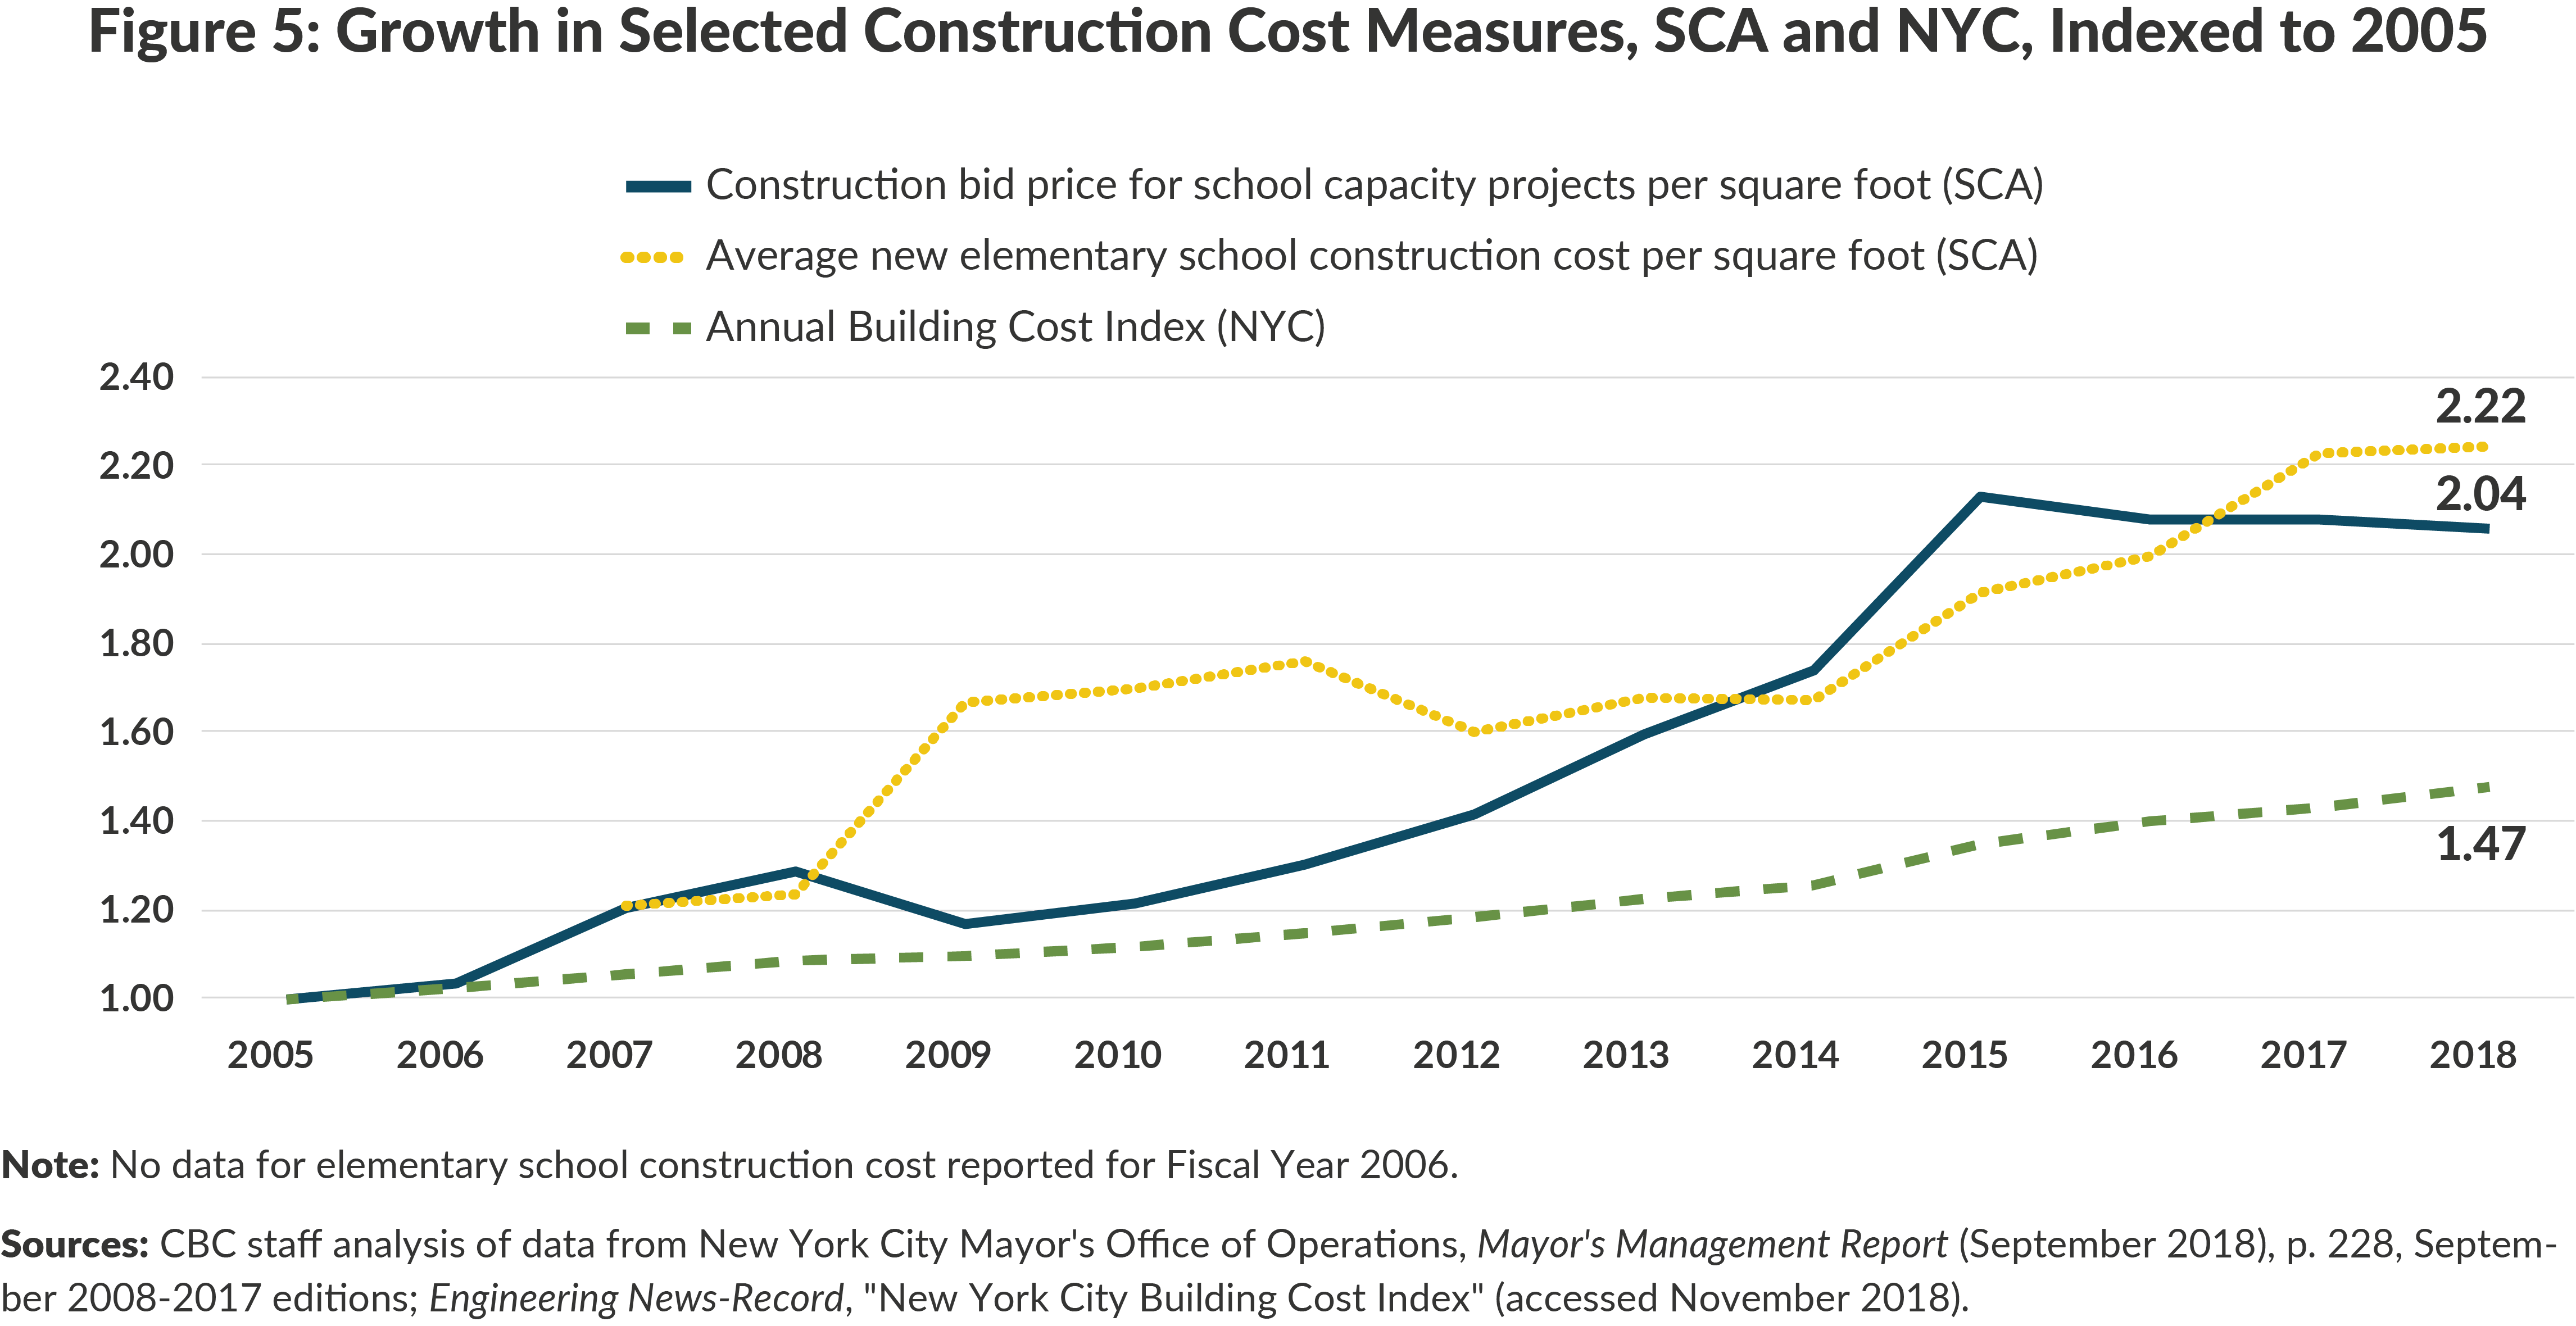 Figure 5: Growth in Selected Construction Cost Measures, SCA and NYC, Indexed to 2005